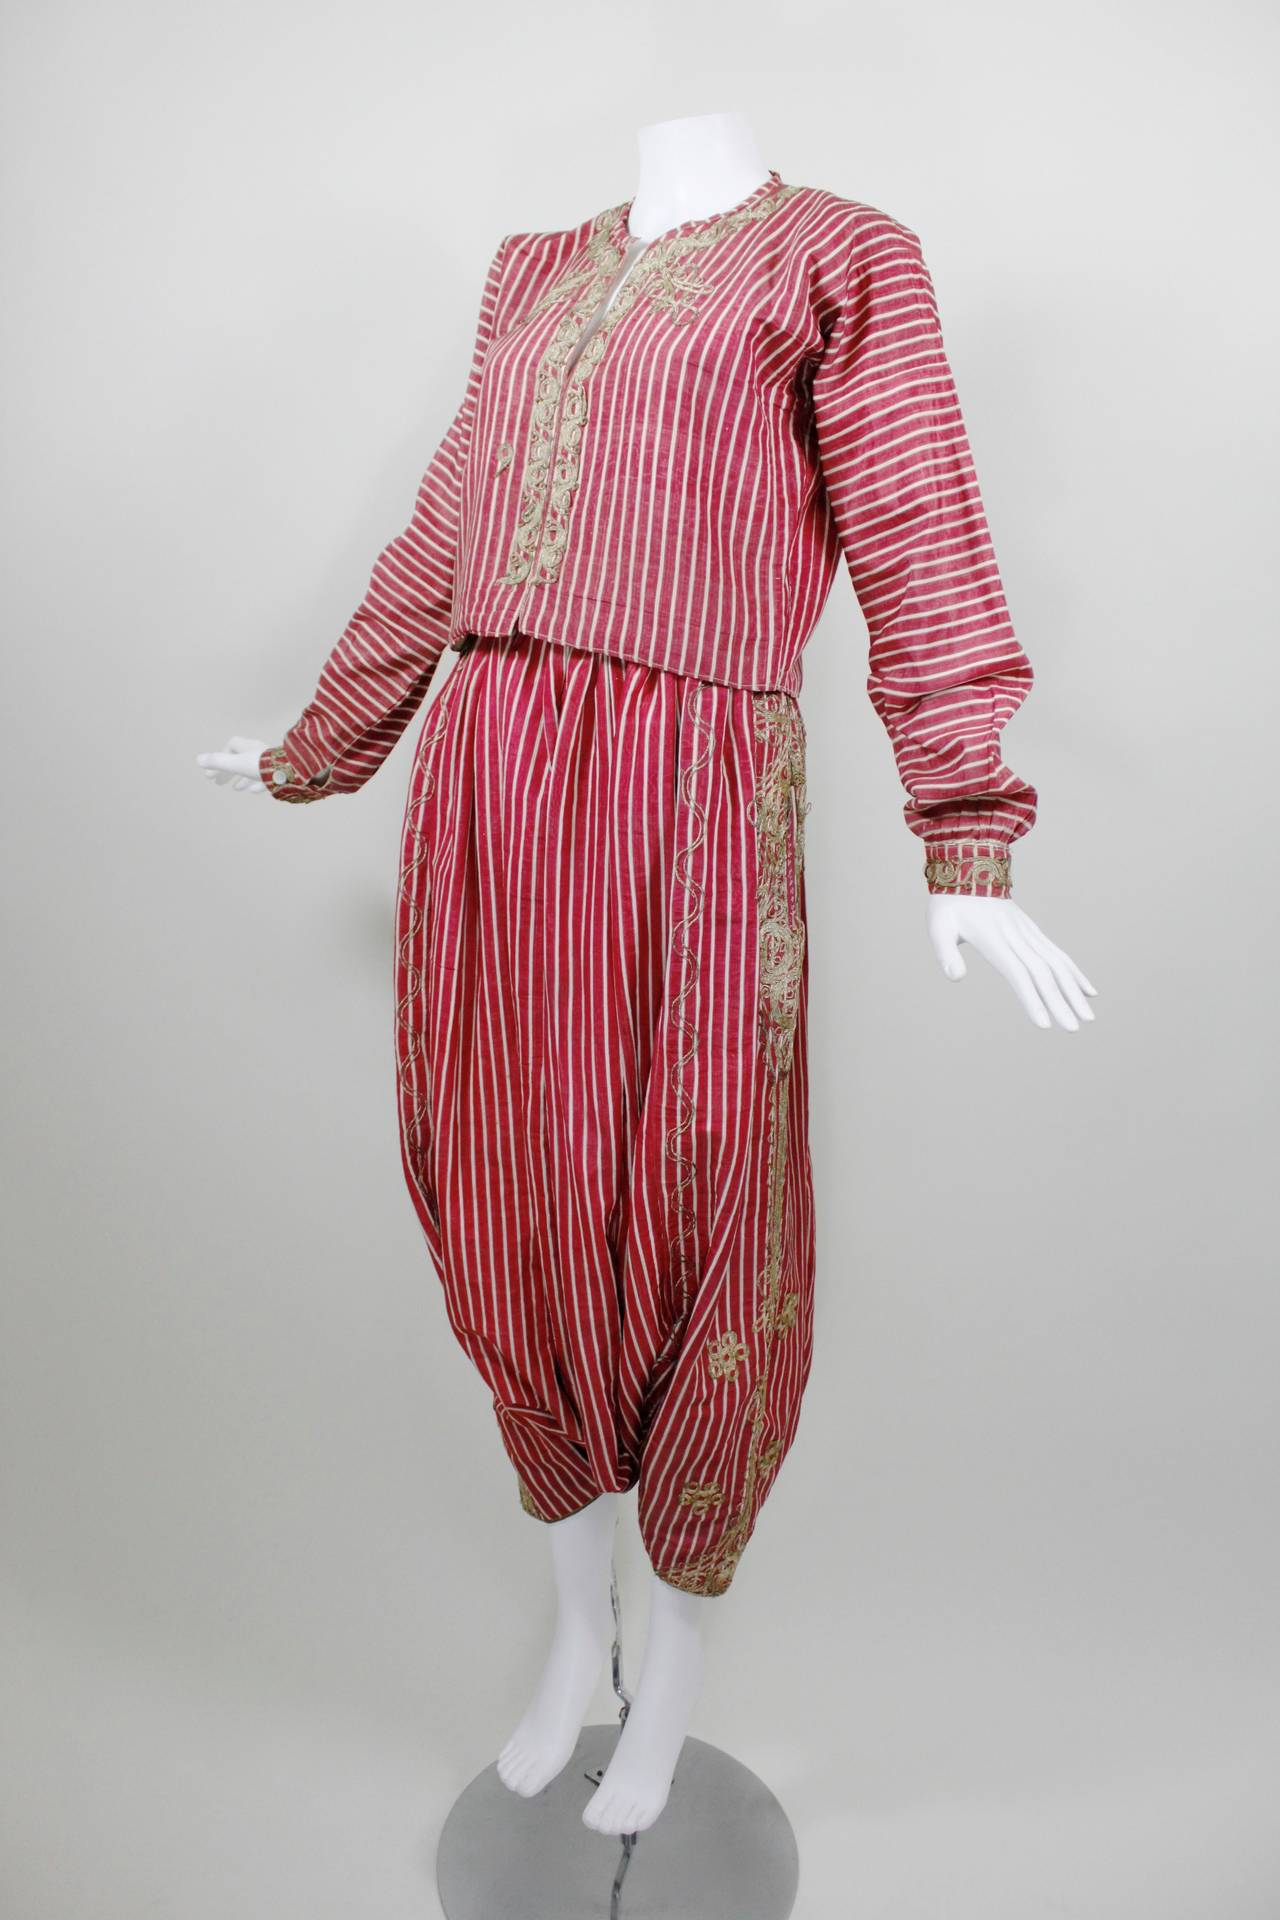 Turkish Silk Moire Striped Harem Pant Ensemble with Bullion Embroidery 3